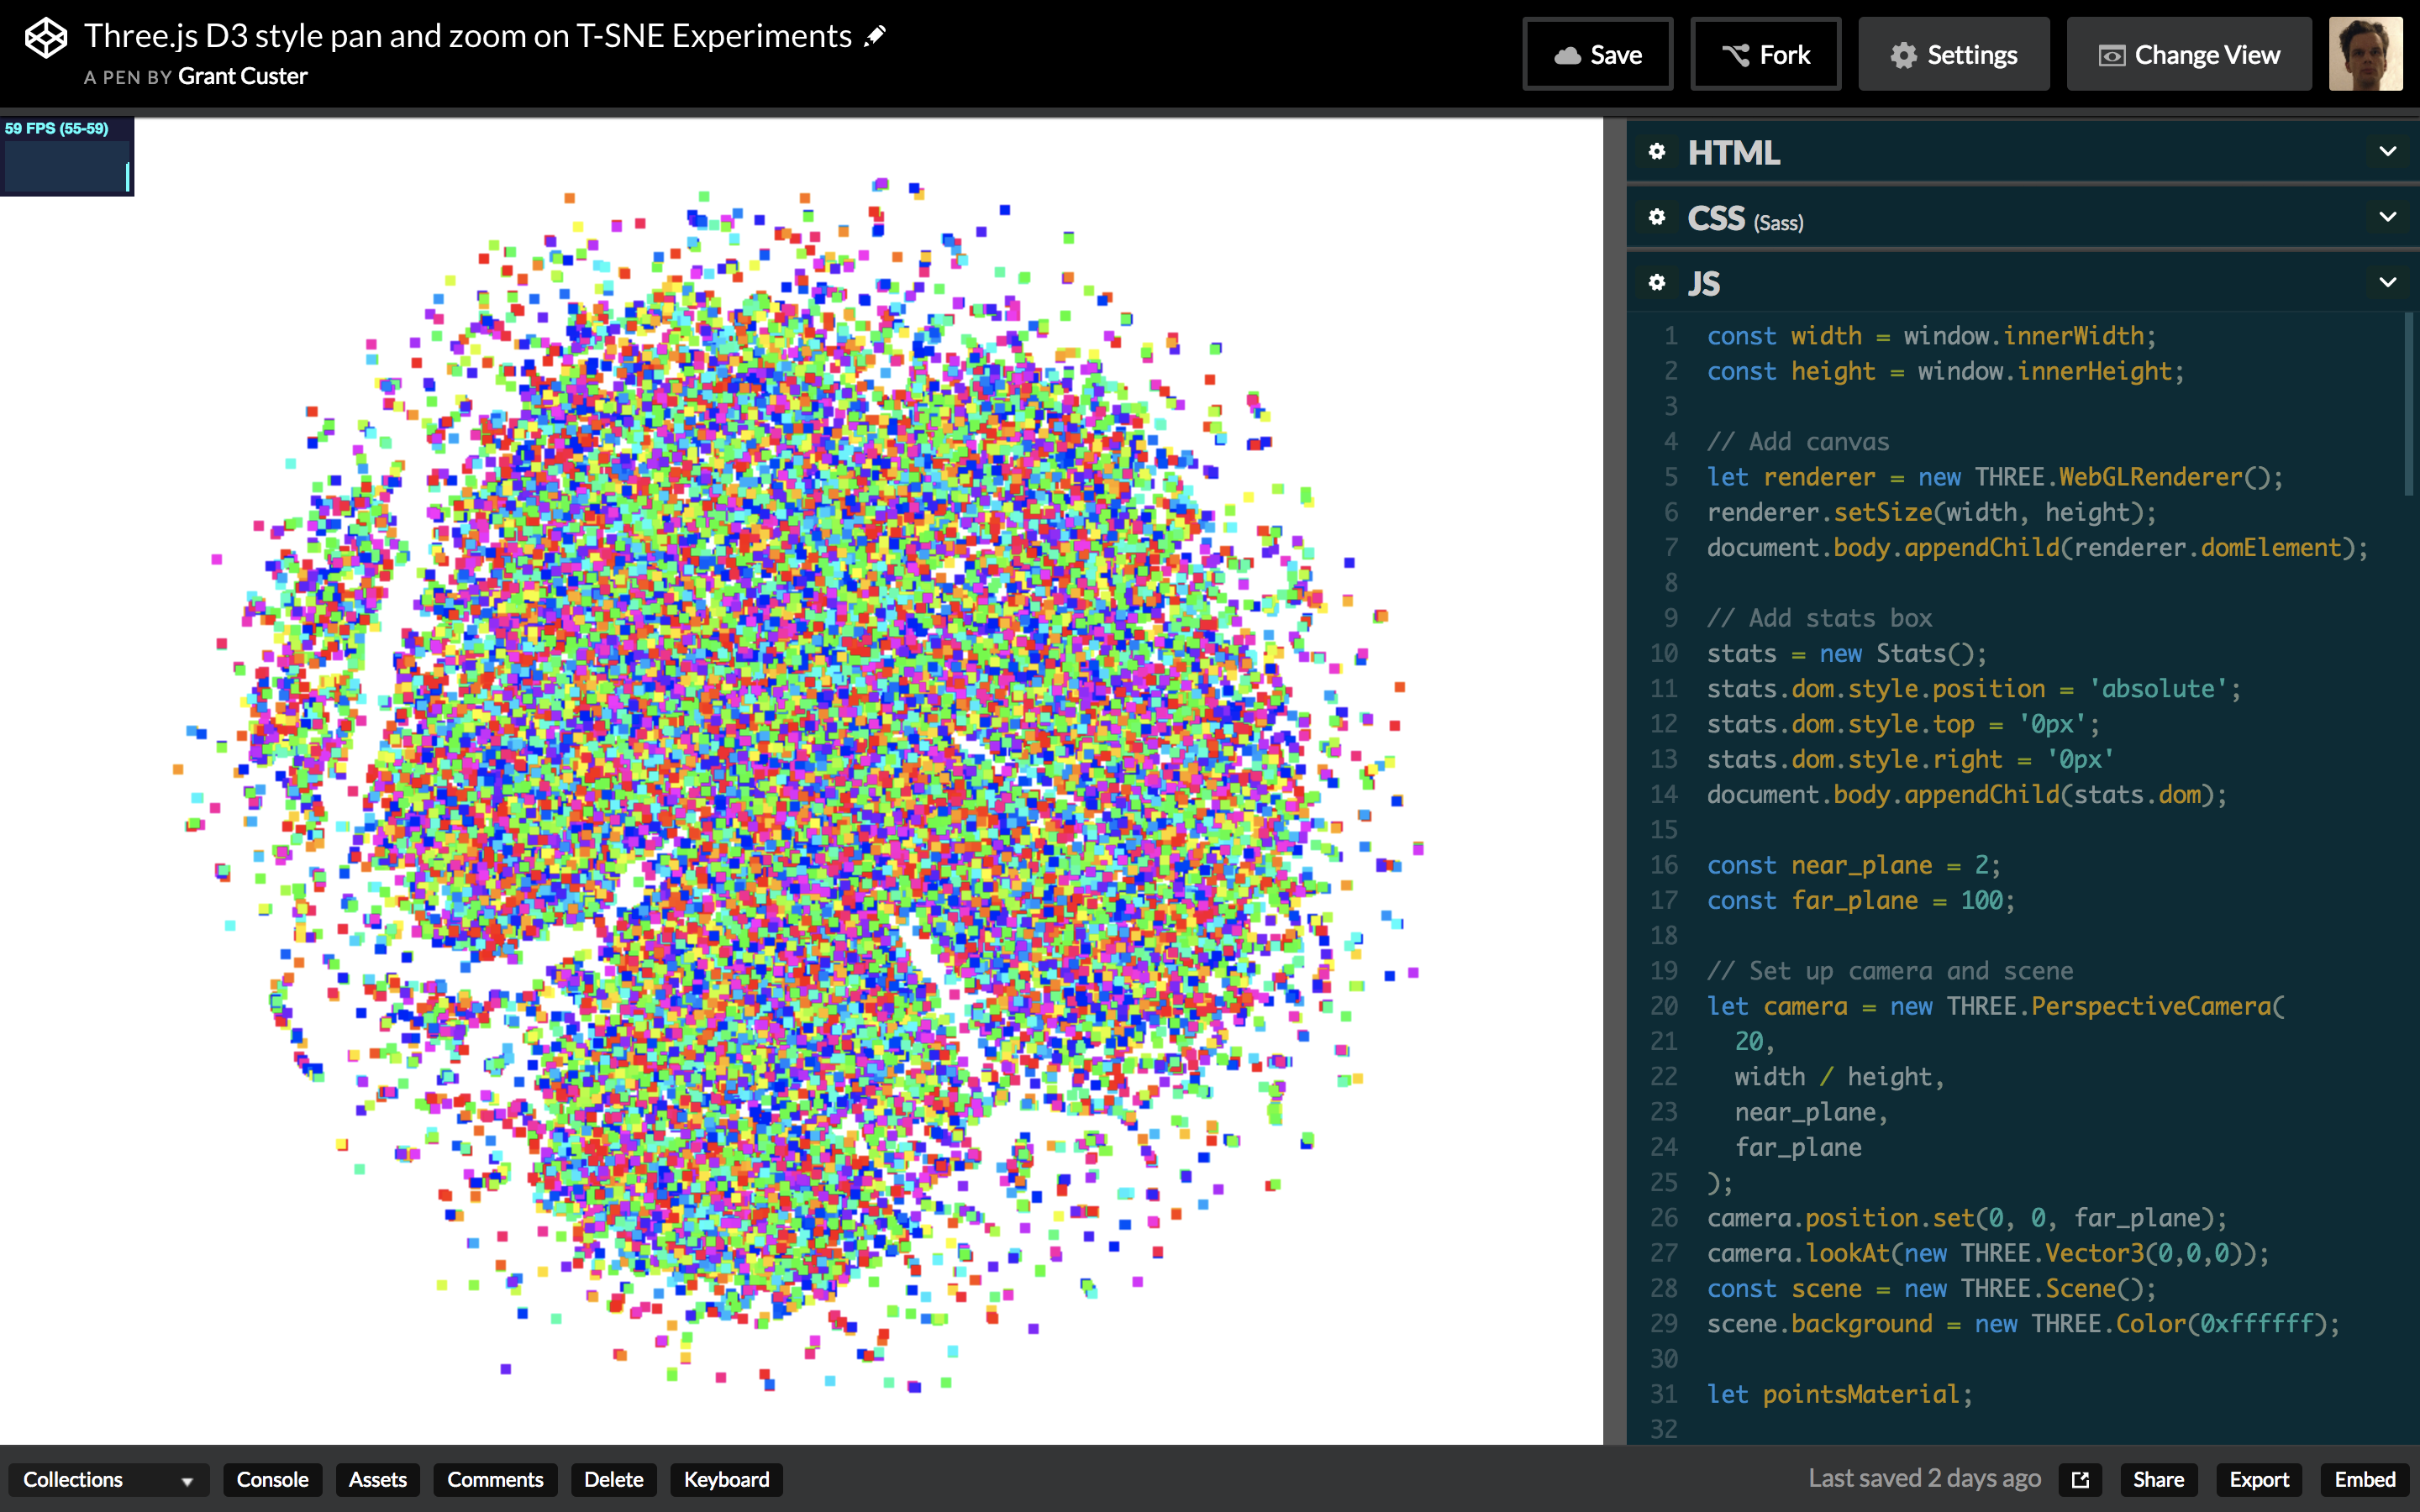 A screenshot of the final working demo: a plotted t-sne with working pan and zoom.